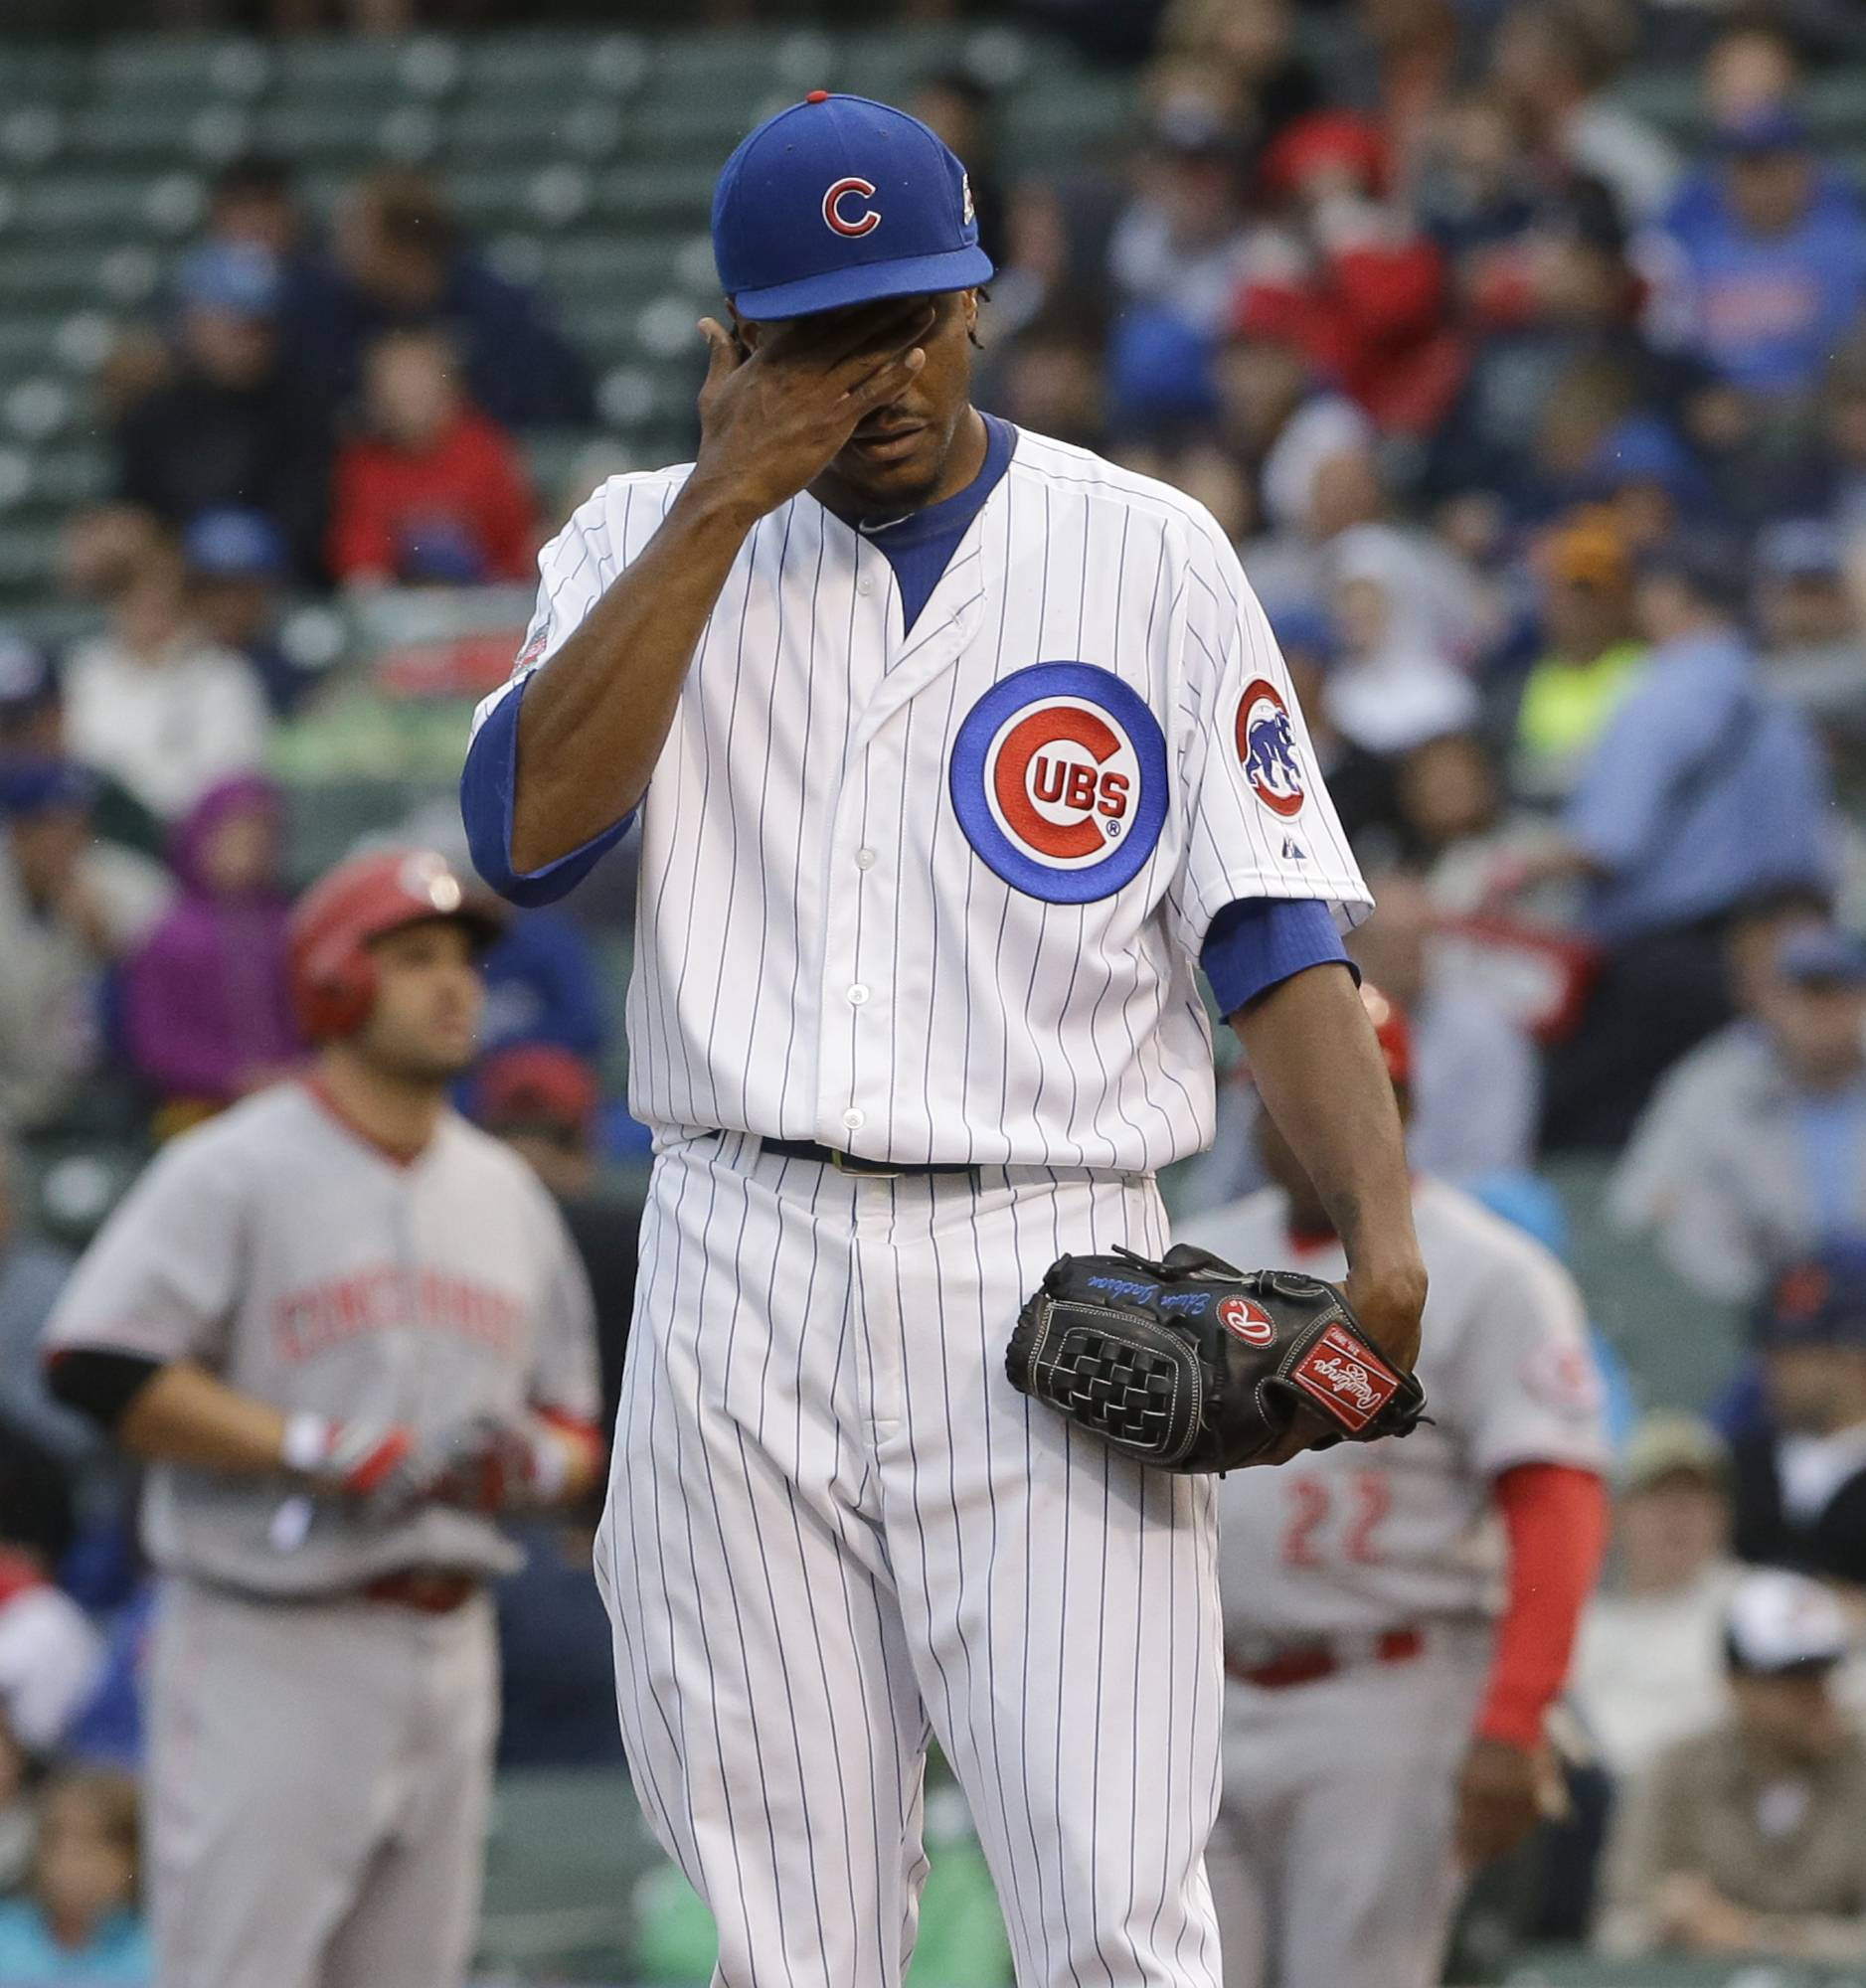 Edwin Jackson turned in another uninspiring performance Wednesday night for the Cubs as they fell 4-1 to the Cincinnati Reds at chilly Wrigley Field. The 30-year-old right-hander lasted just 5⅓ innings and gave up 6 hits and 4 runs as his record fell to 5-8 with a 5.22 ERA. Jackson walked four and was consistently behind hitters all night.